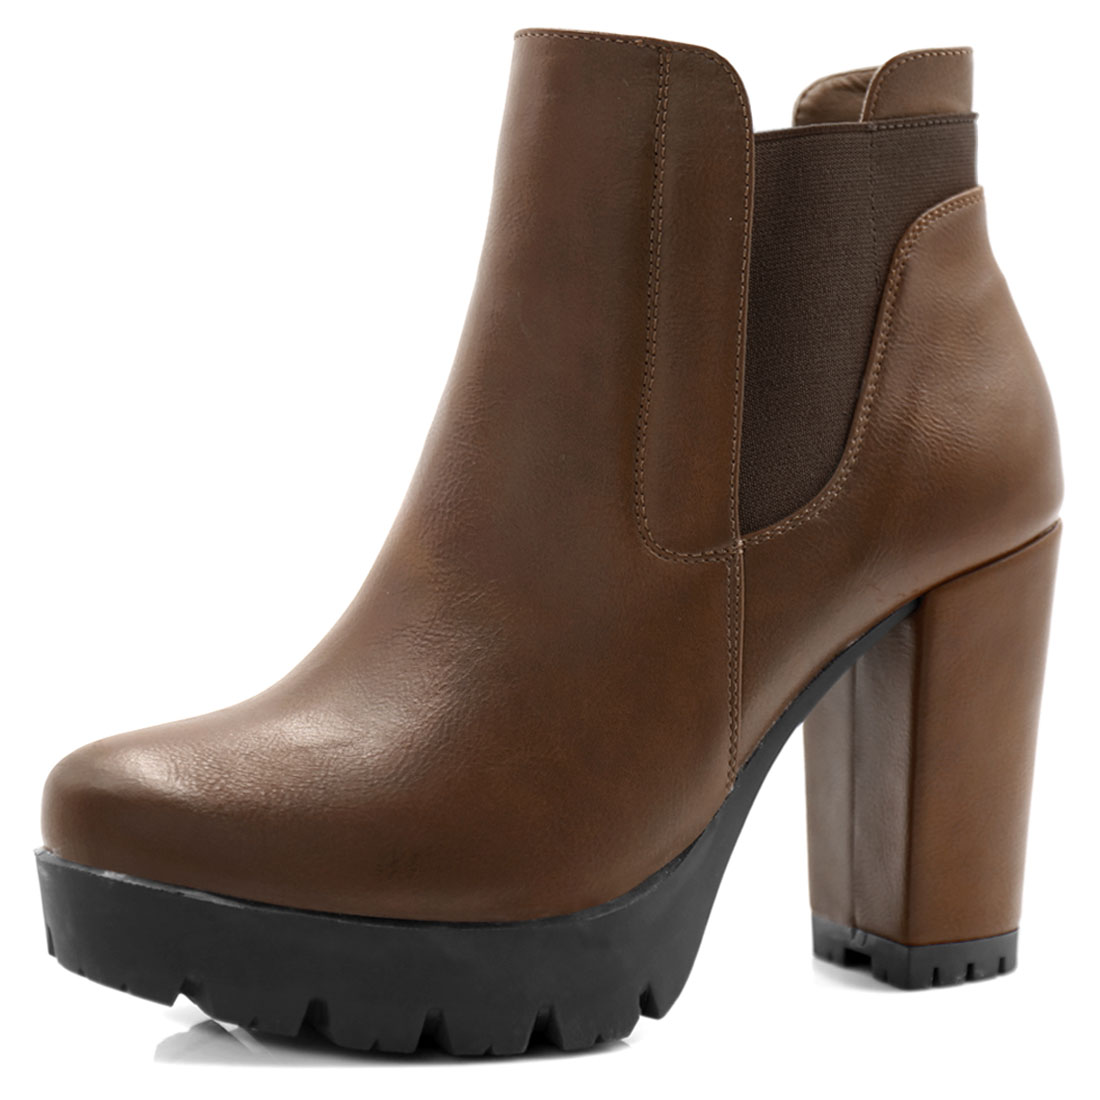 Women Chunky High Heel Platform Zipper Chelsea Boots Brown US 6